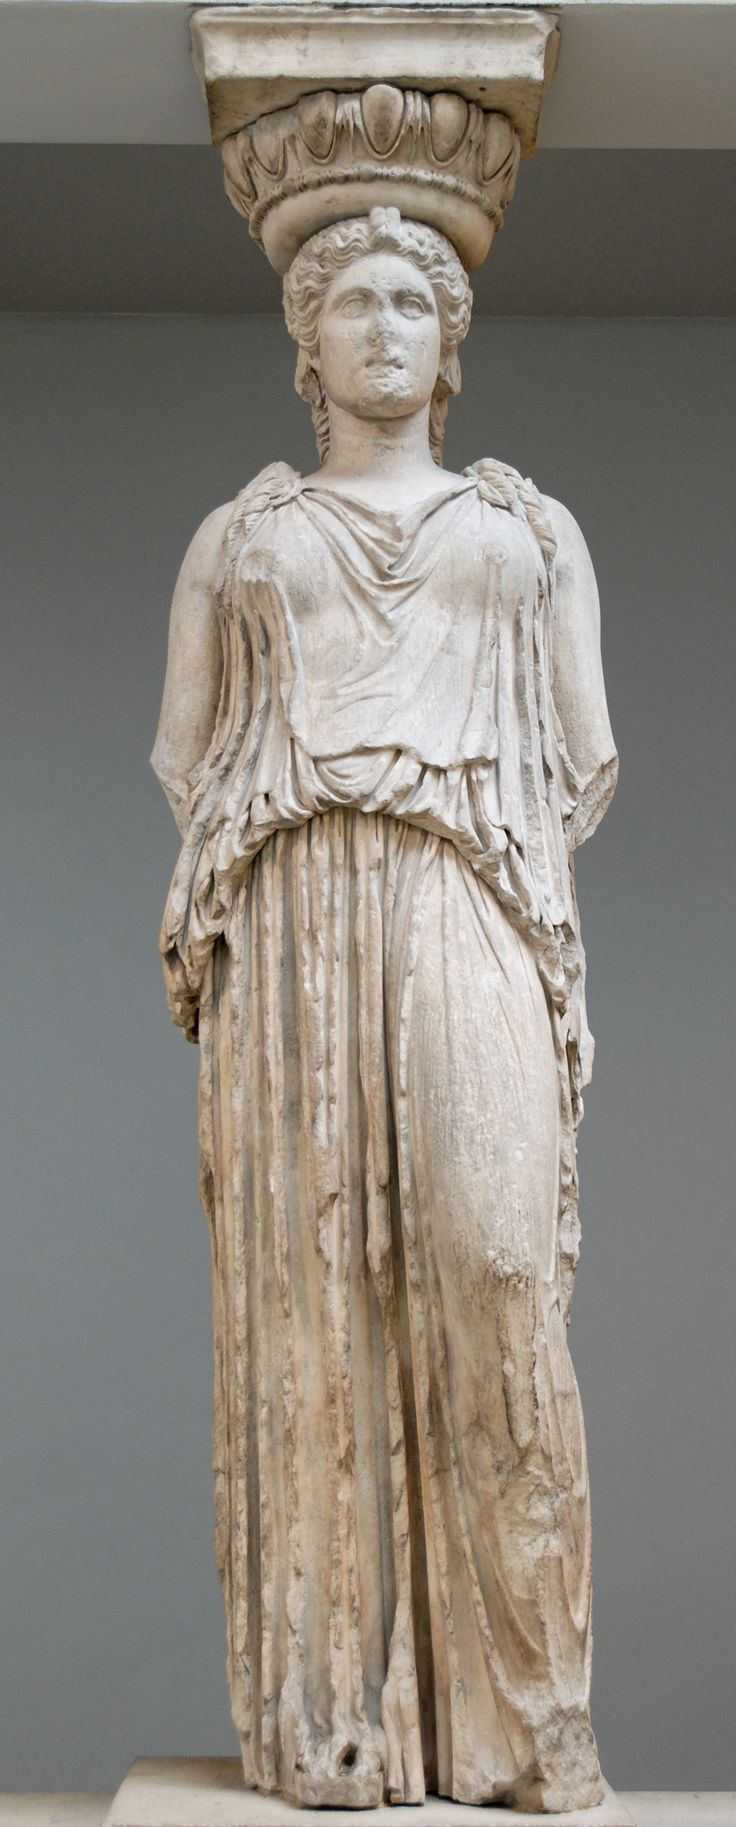 Erechtheion: Caryatid and Column. Caryatid (South Porch) and Ionic Column (North Porch), Erechtheion on the Acropolis, Athens, marble, 421-407 B.C.E. (British Museum, London); Mnesicles may have been the architect.